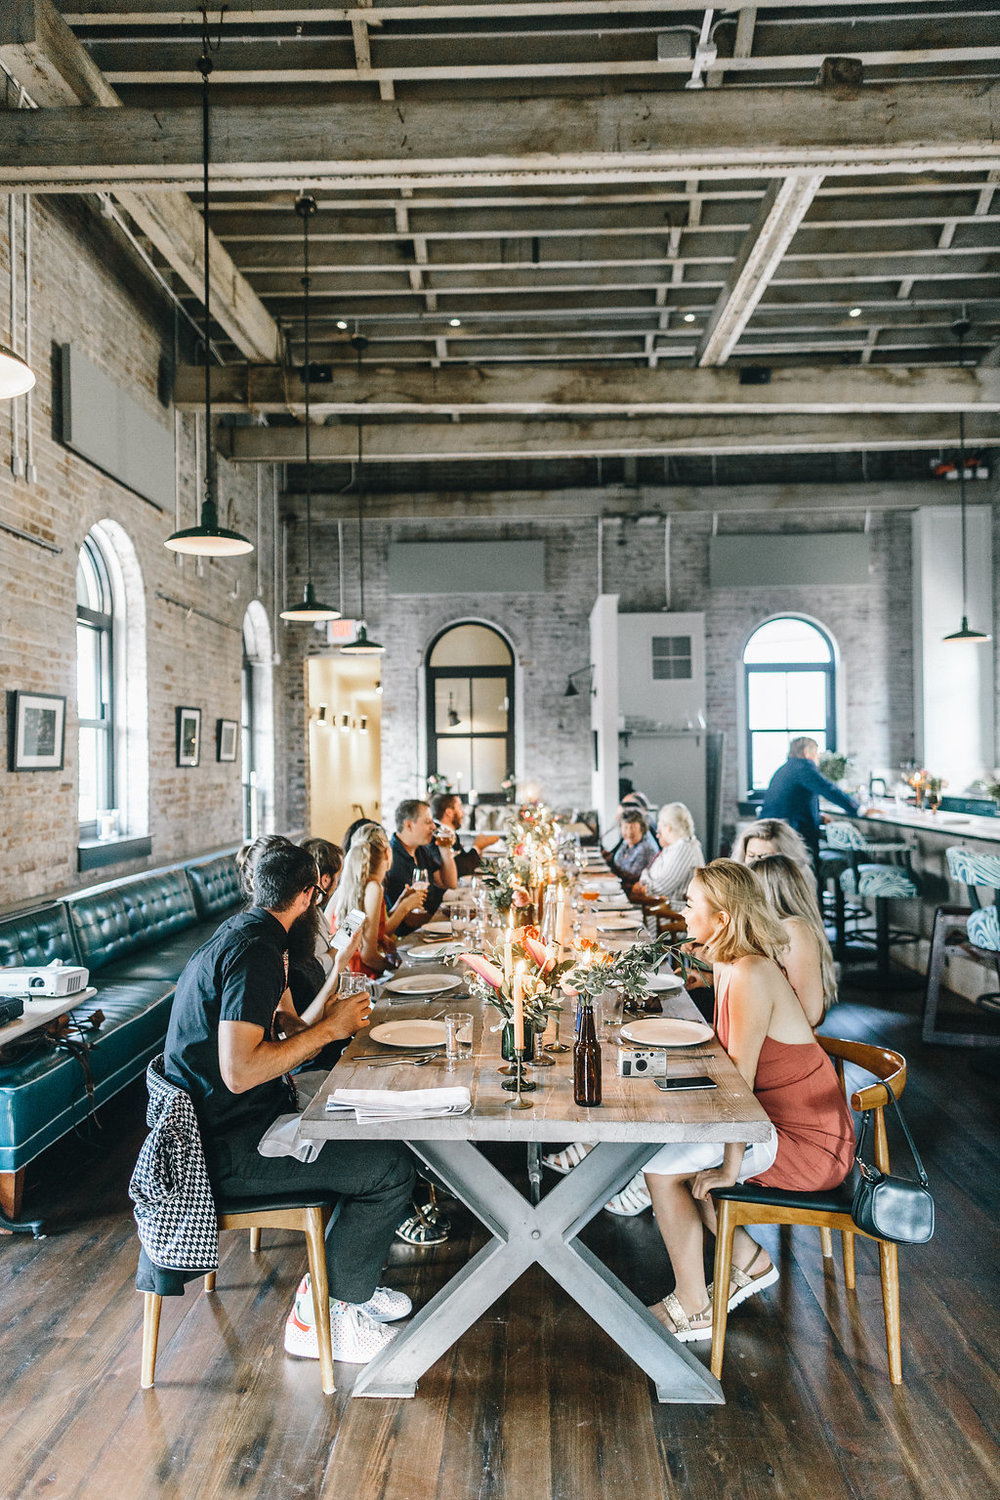 shannon-britt-the-florence-rehearsal-dinner-welcome-party-savannah-weddings-savannah-wedding-planner-savannah-florist-mackensey-alexander-photography-savannah-bridal-boutique-ivoru-and-beau-bridal-boutique-soutuern-wedding-boho-wedding-10.jpg